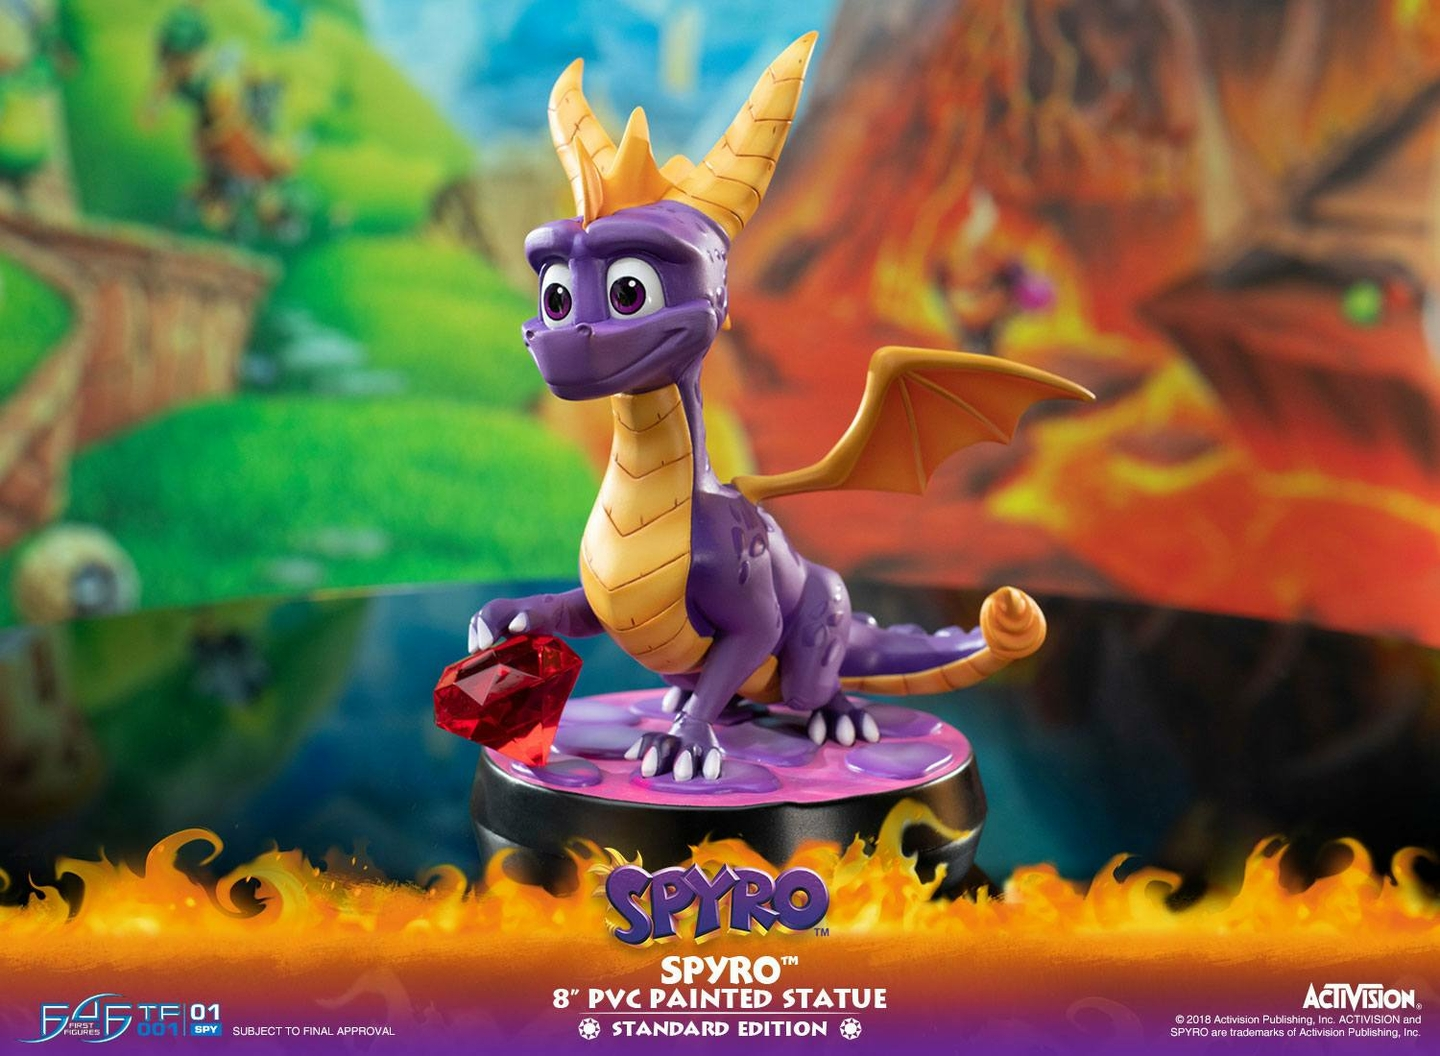 Statuette Spyro the Dragon Spyro 20cm 1001 Figurines (11)